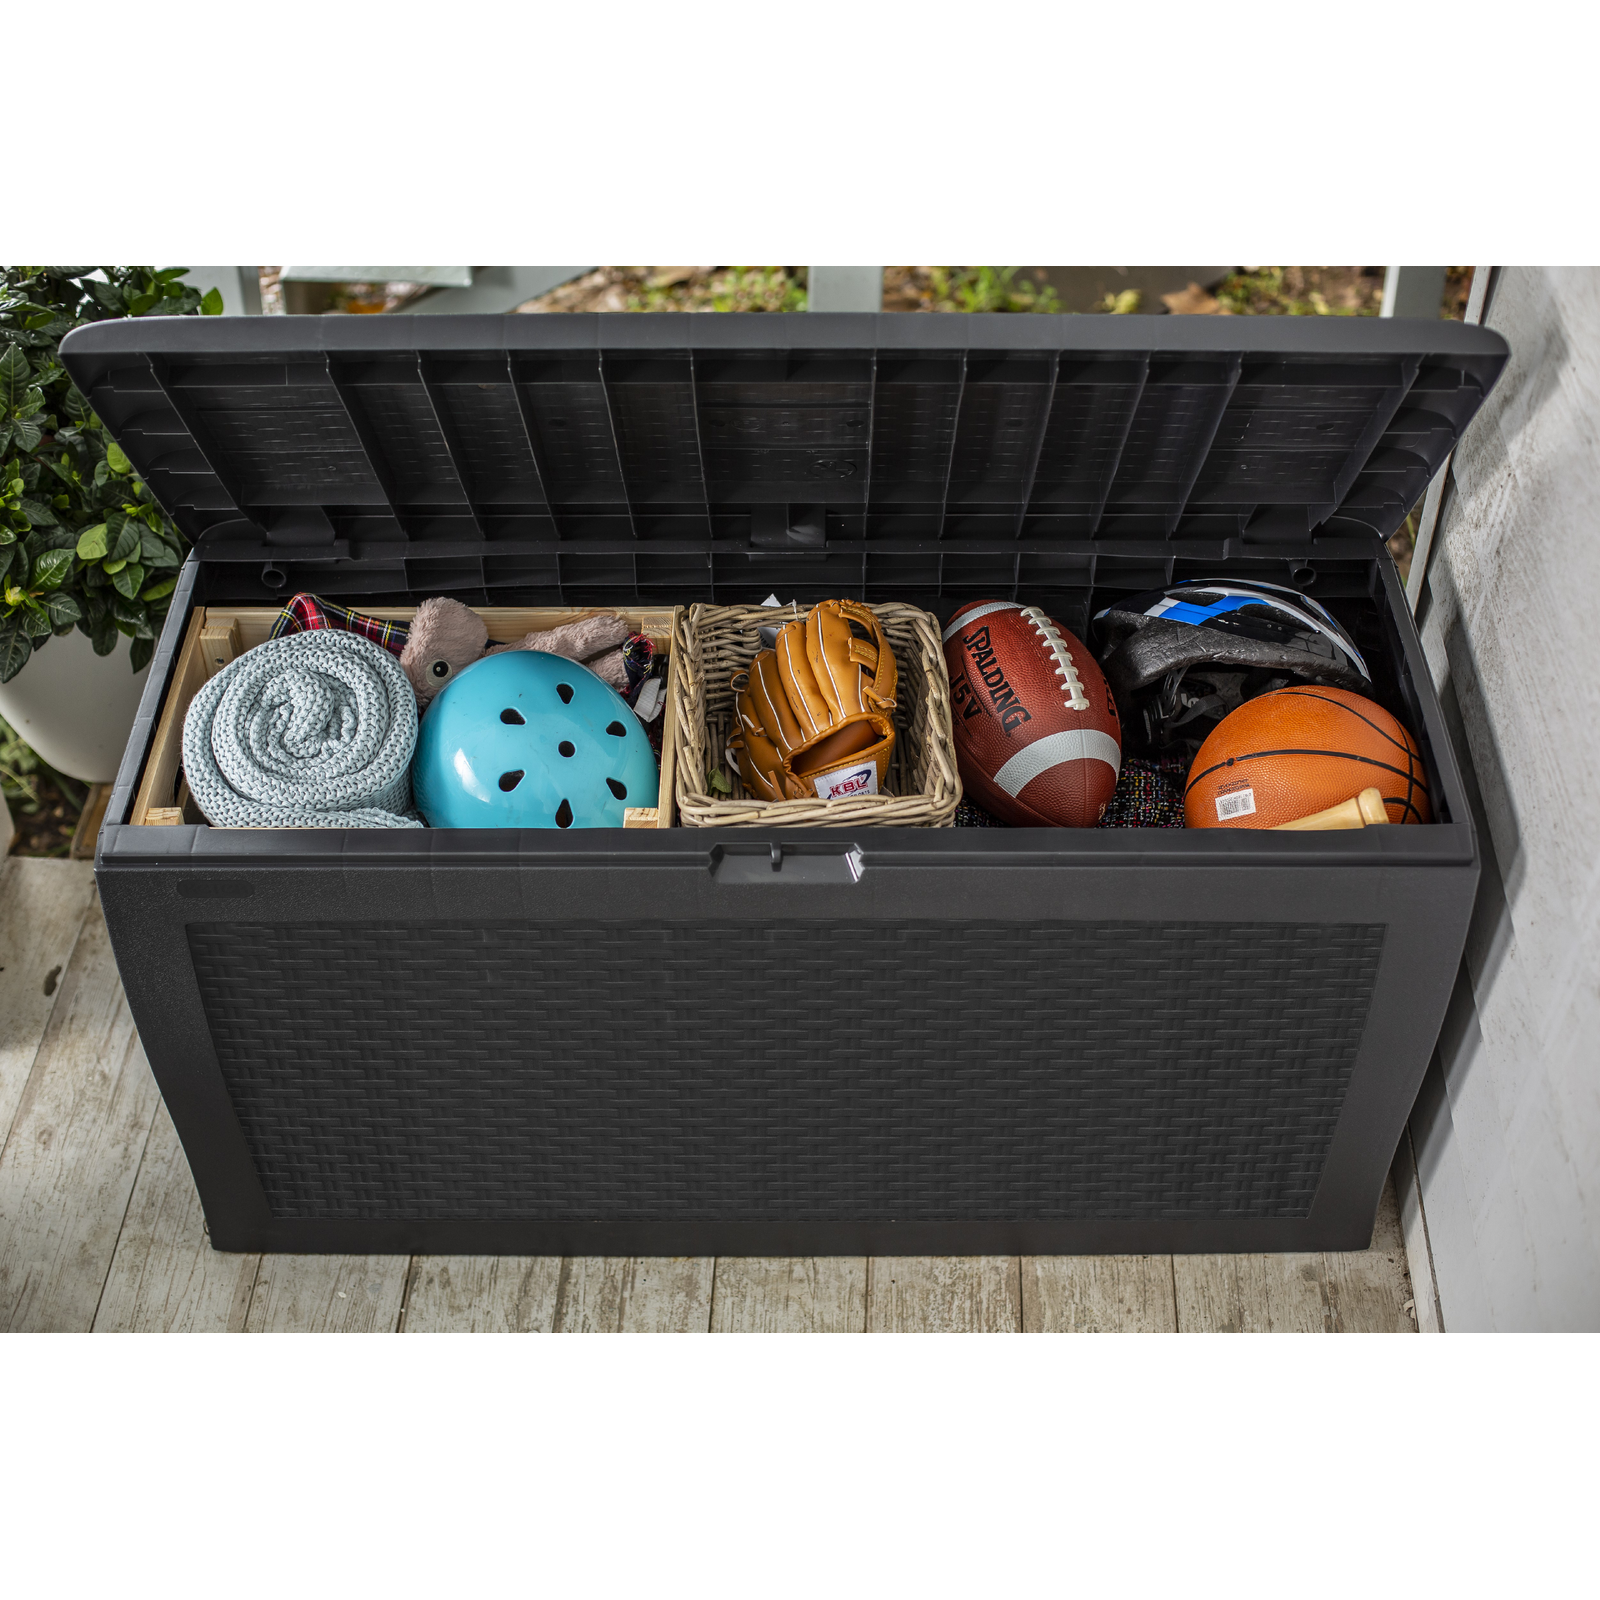 Keter Samoa Storage Box with lid open showing handy storage